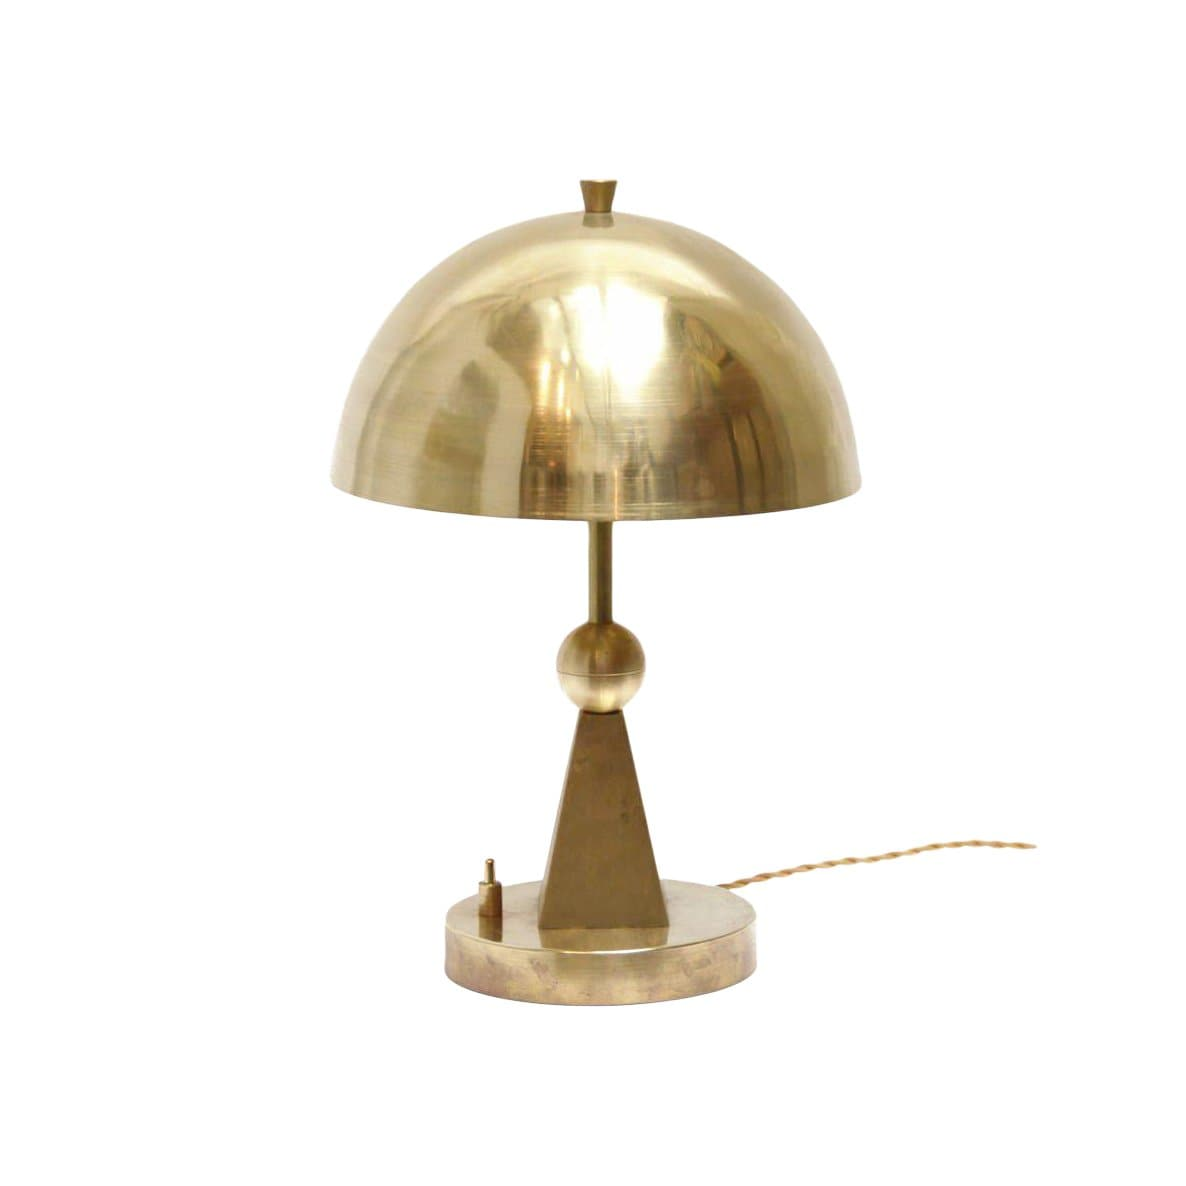 Michele Varian Table Brass Primary Shapes Table Lamp